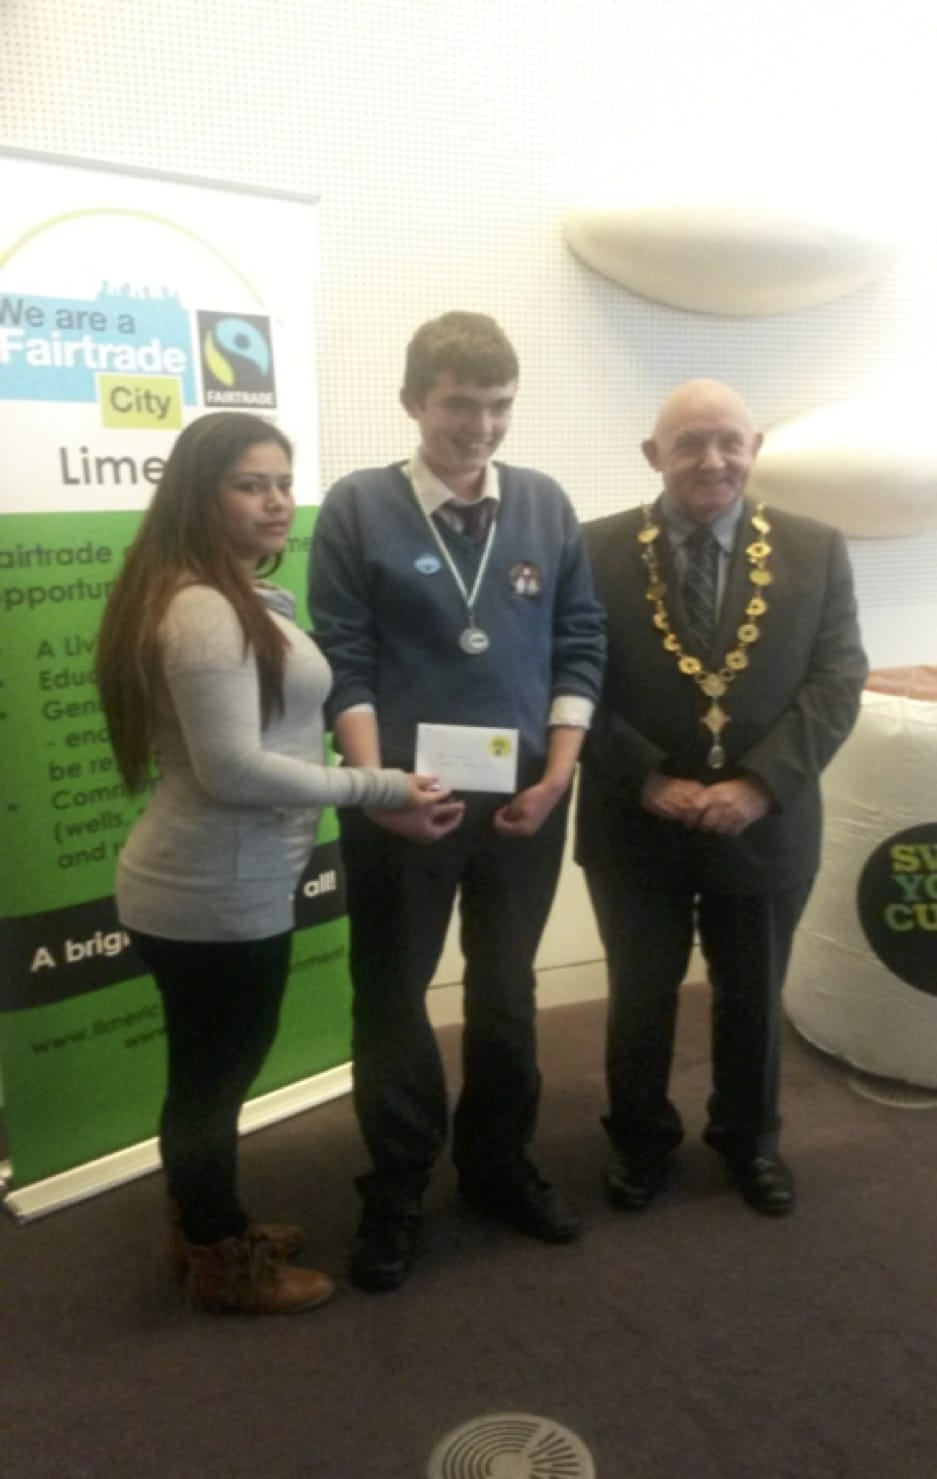 March 2017: Alan Wallace receiving his award from the Mayor of Limerick after winning in the Fair-trade Poster Competition.